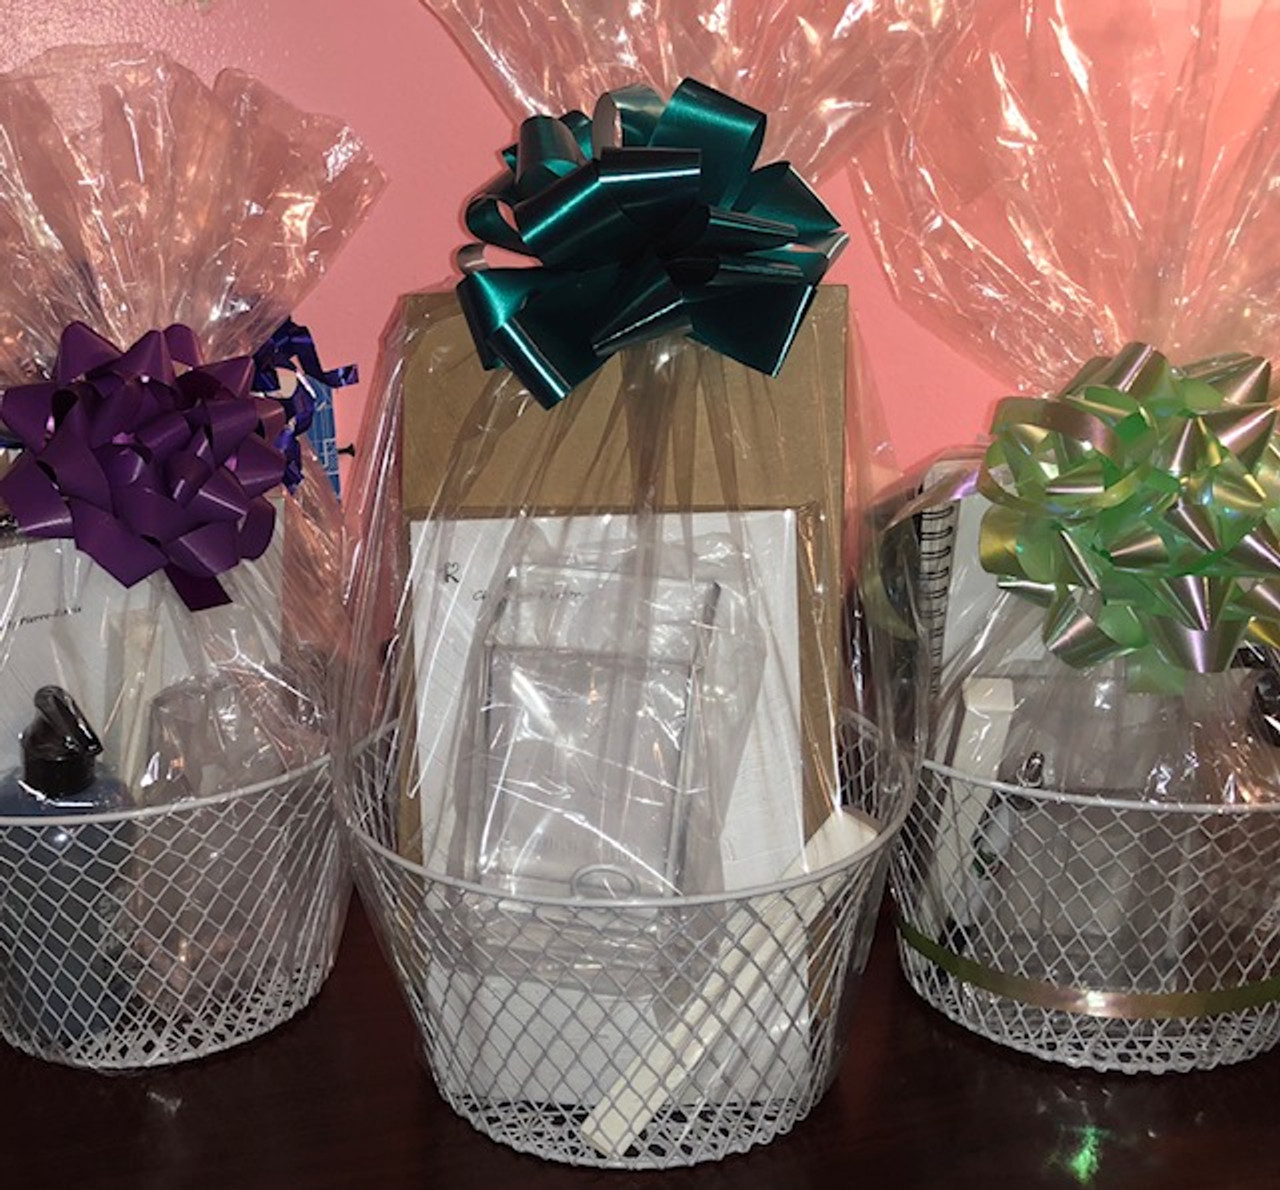 Gift baskets - Baskets for all occasions Personal Gift Baskets - Sorority Gift Baskets - Bridal Gift Baskets - Retirement Gift Baskets - Birthday Gift ... & Gift baskets - Baskets for all occasions Personal Gift Baskets ...